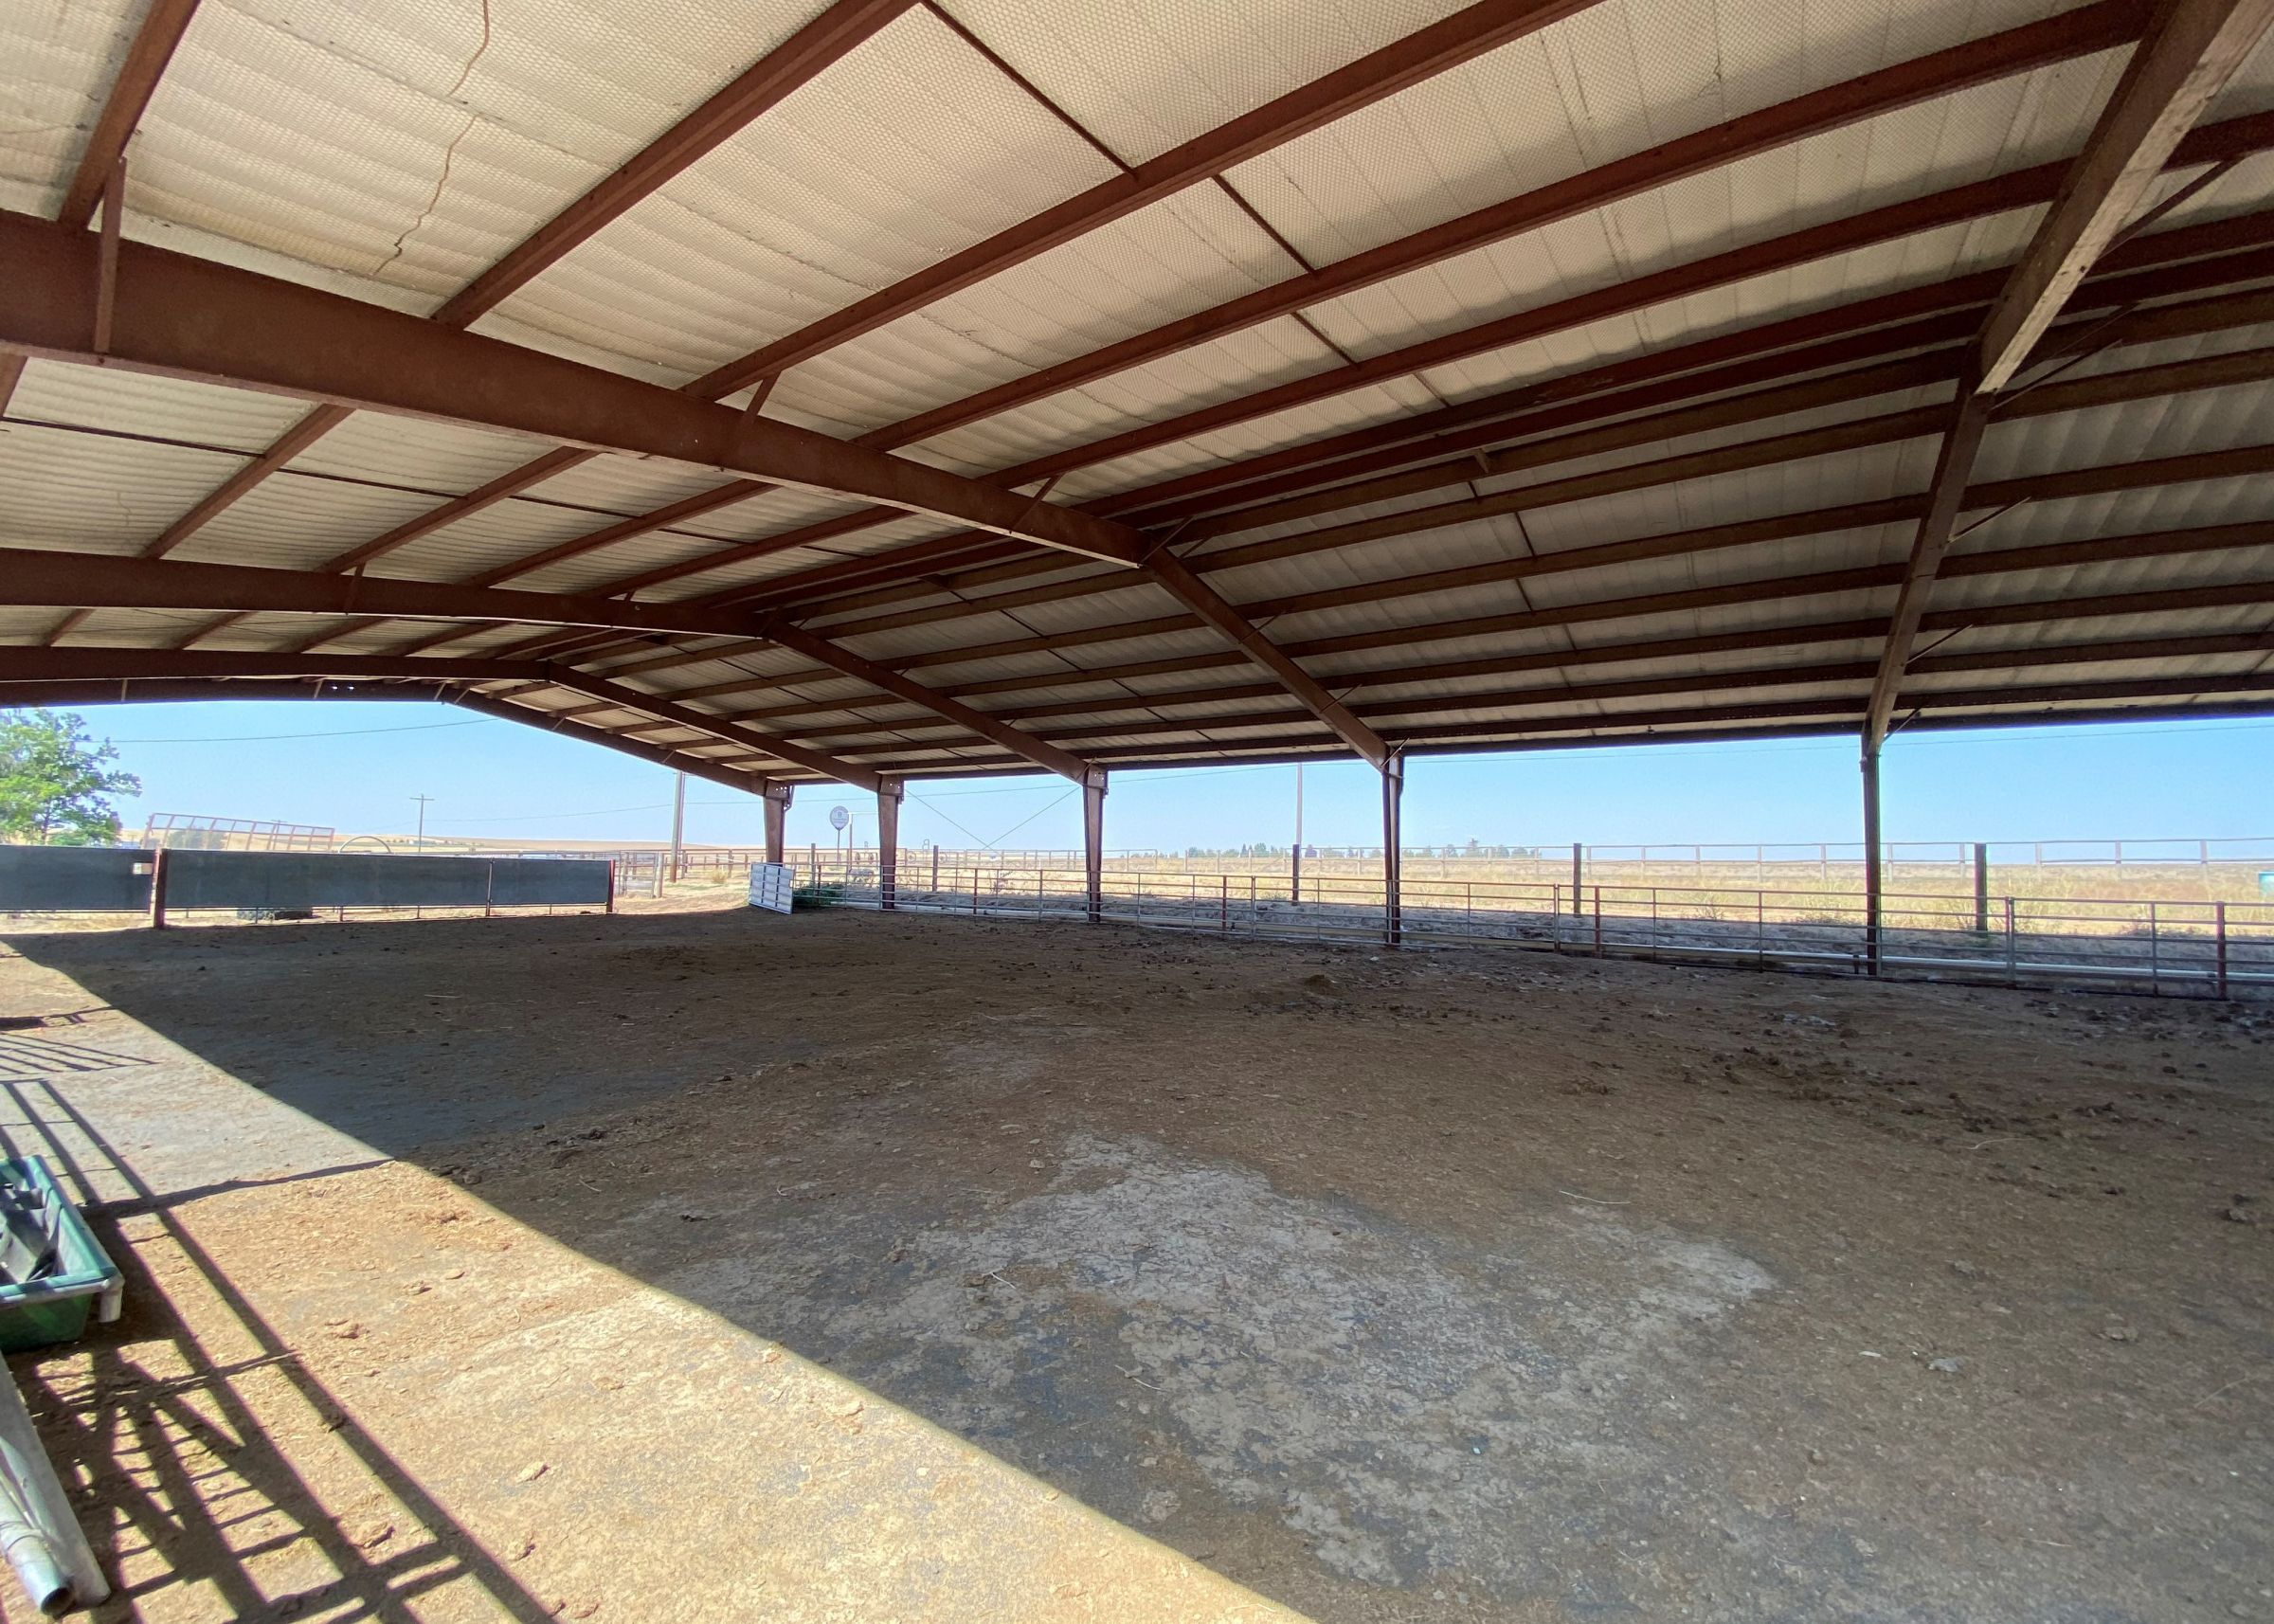 Outdoor Covered Riding Arena